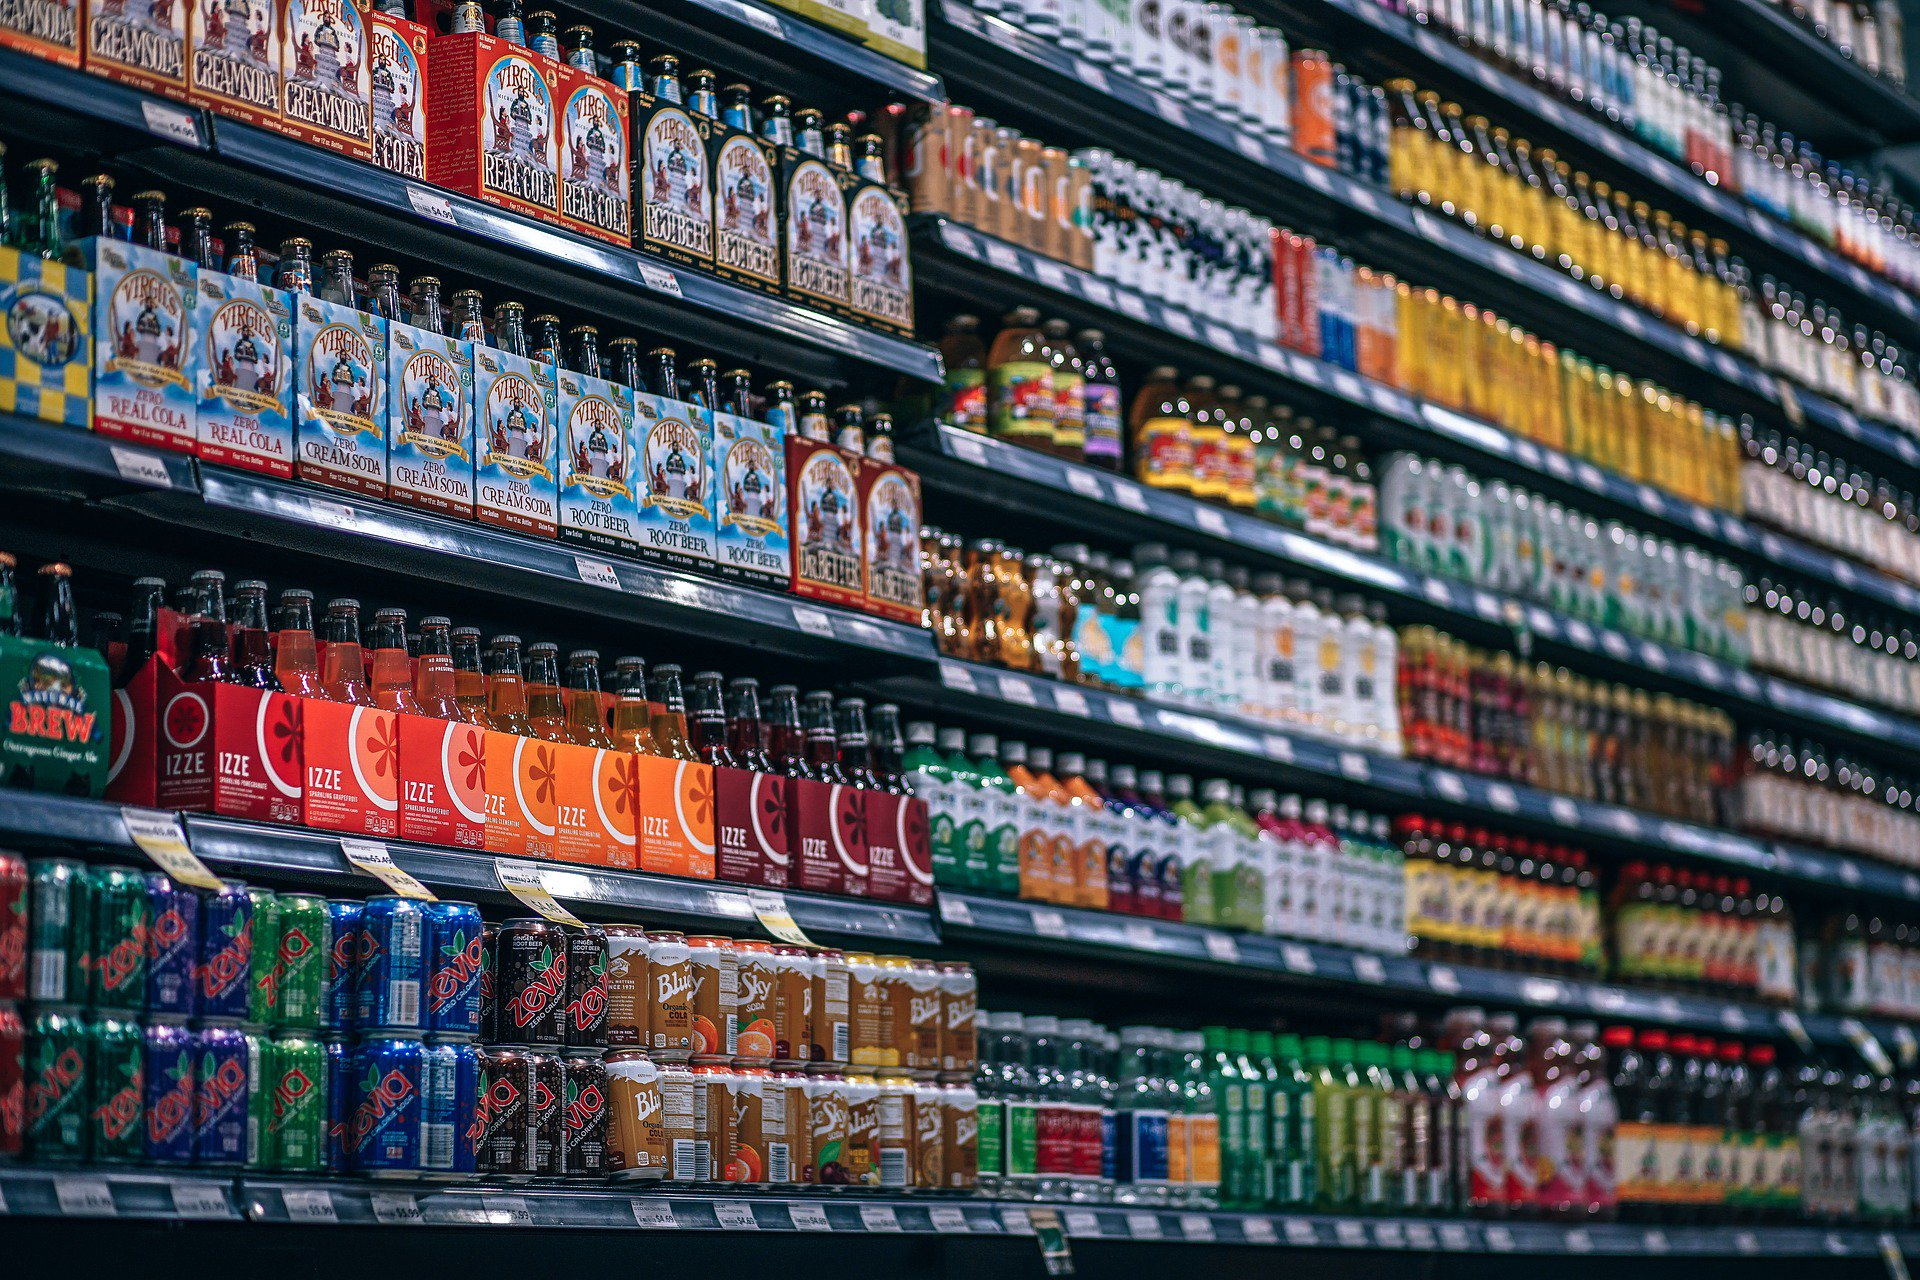 Meeting the challenges of FMCG thanks to Location